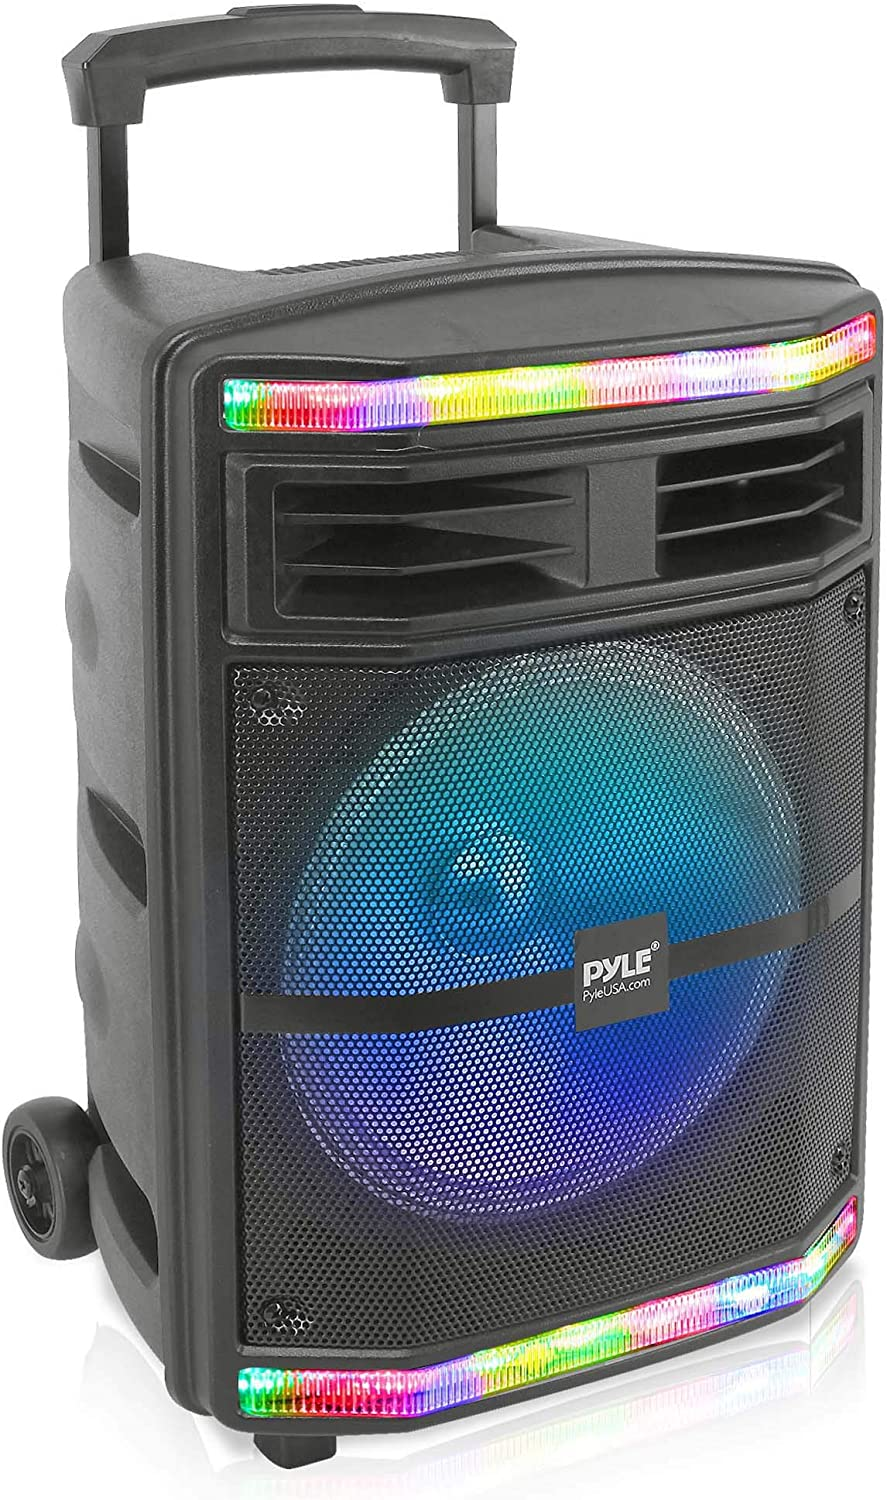 "Pyle Portable Bluetooth PA Speaker System - 600W Bluetooth Speaker Portable PA System W/Rechargeable Battery 1/4"" Microphone in, Party Lights, MP3/USB SD Card Reader, Rolling Wheels PPHP1044B"